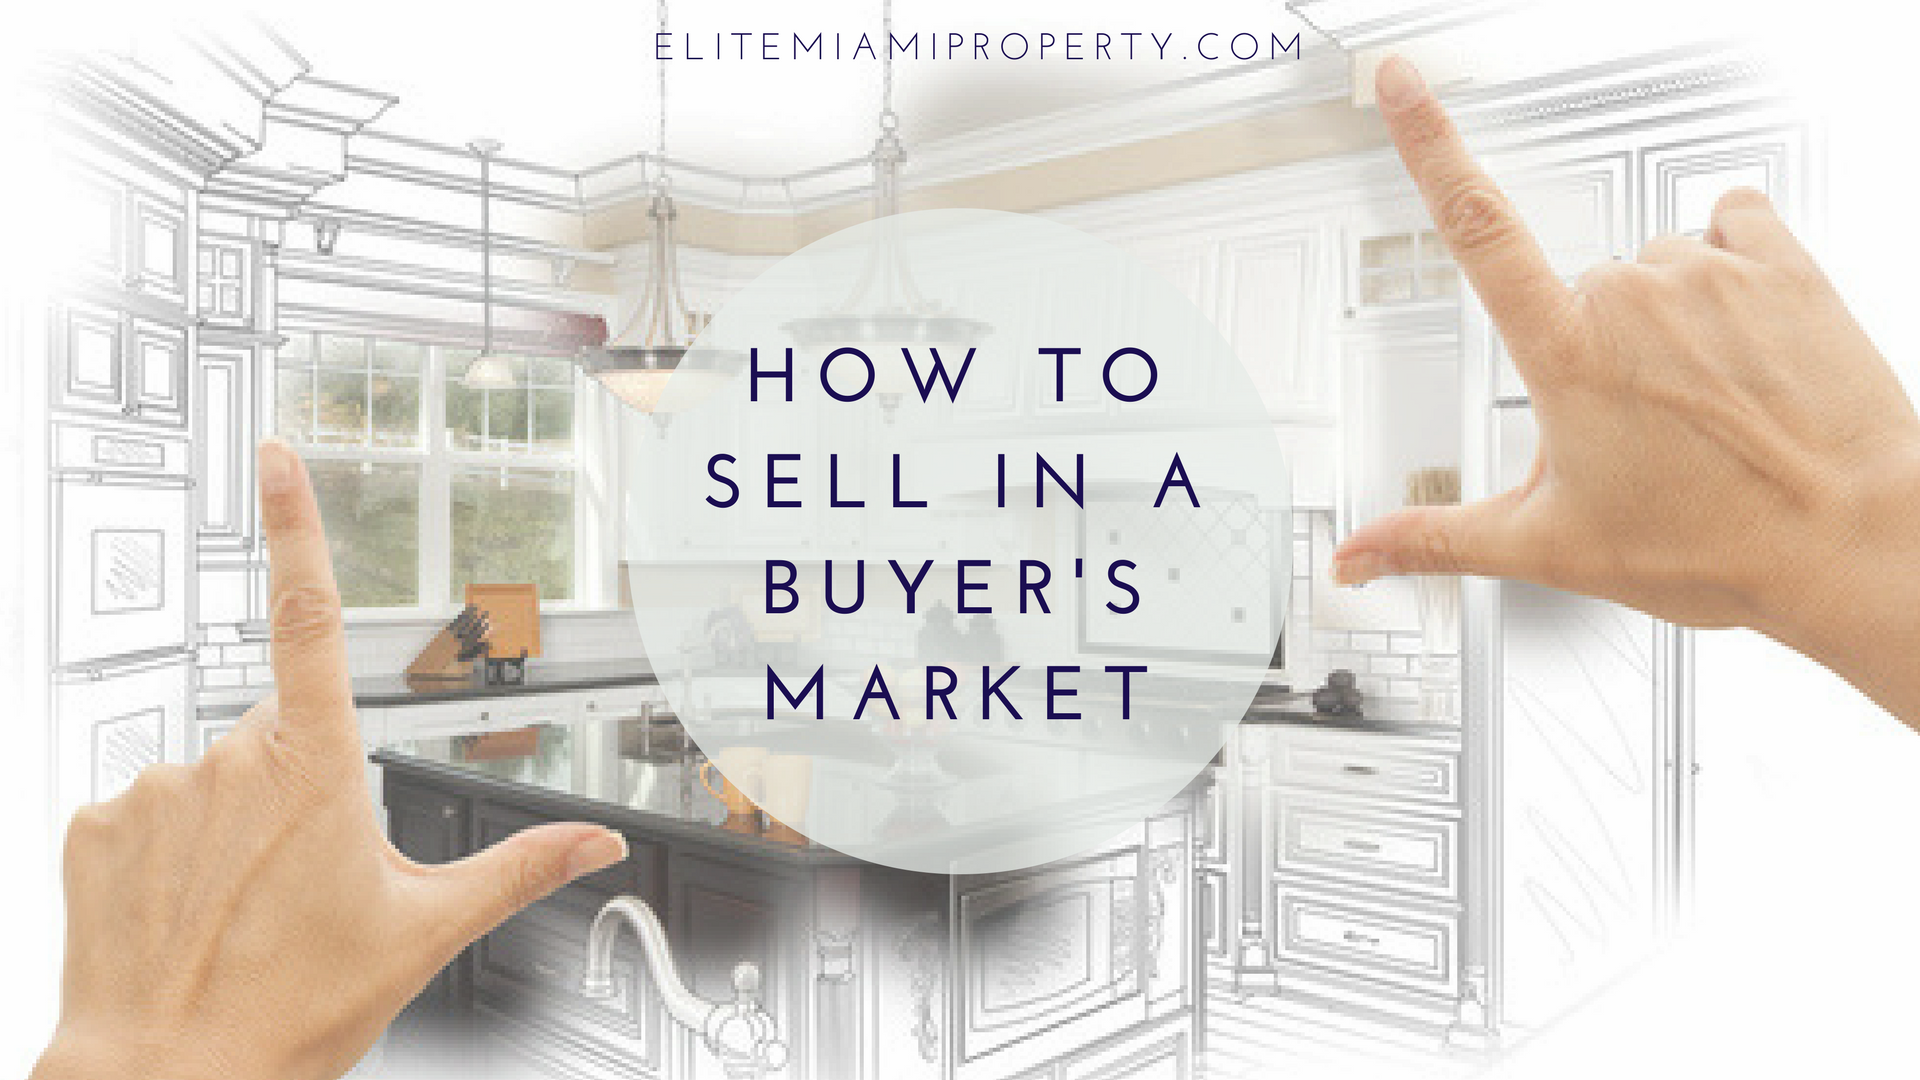 How to sell in a buyer's market